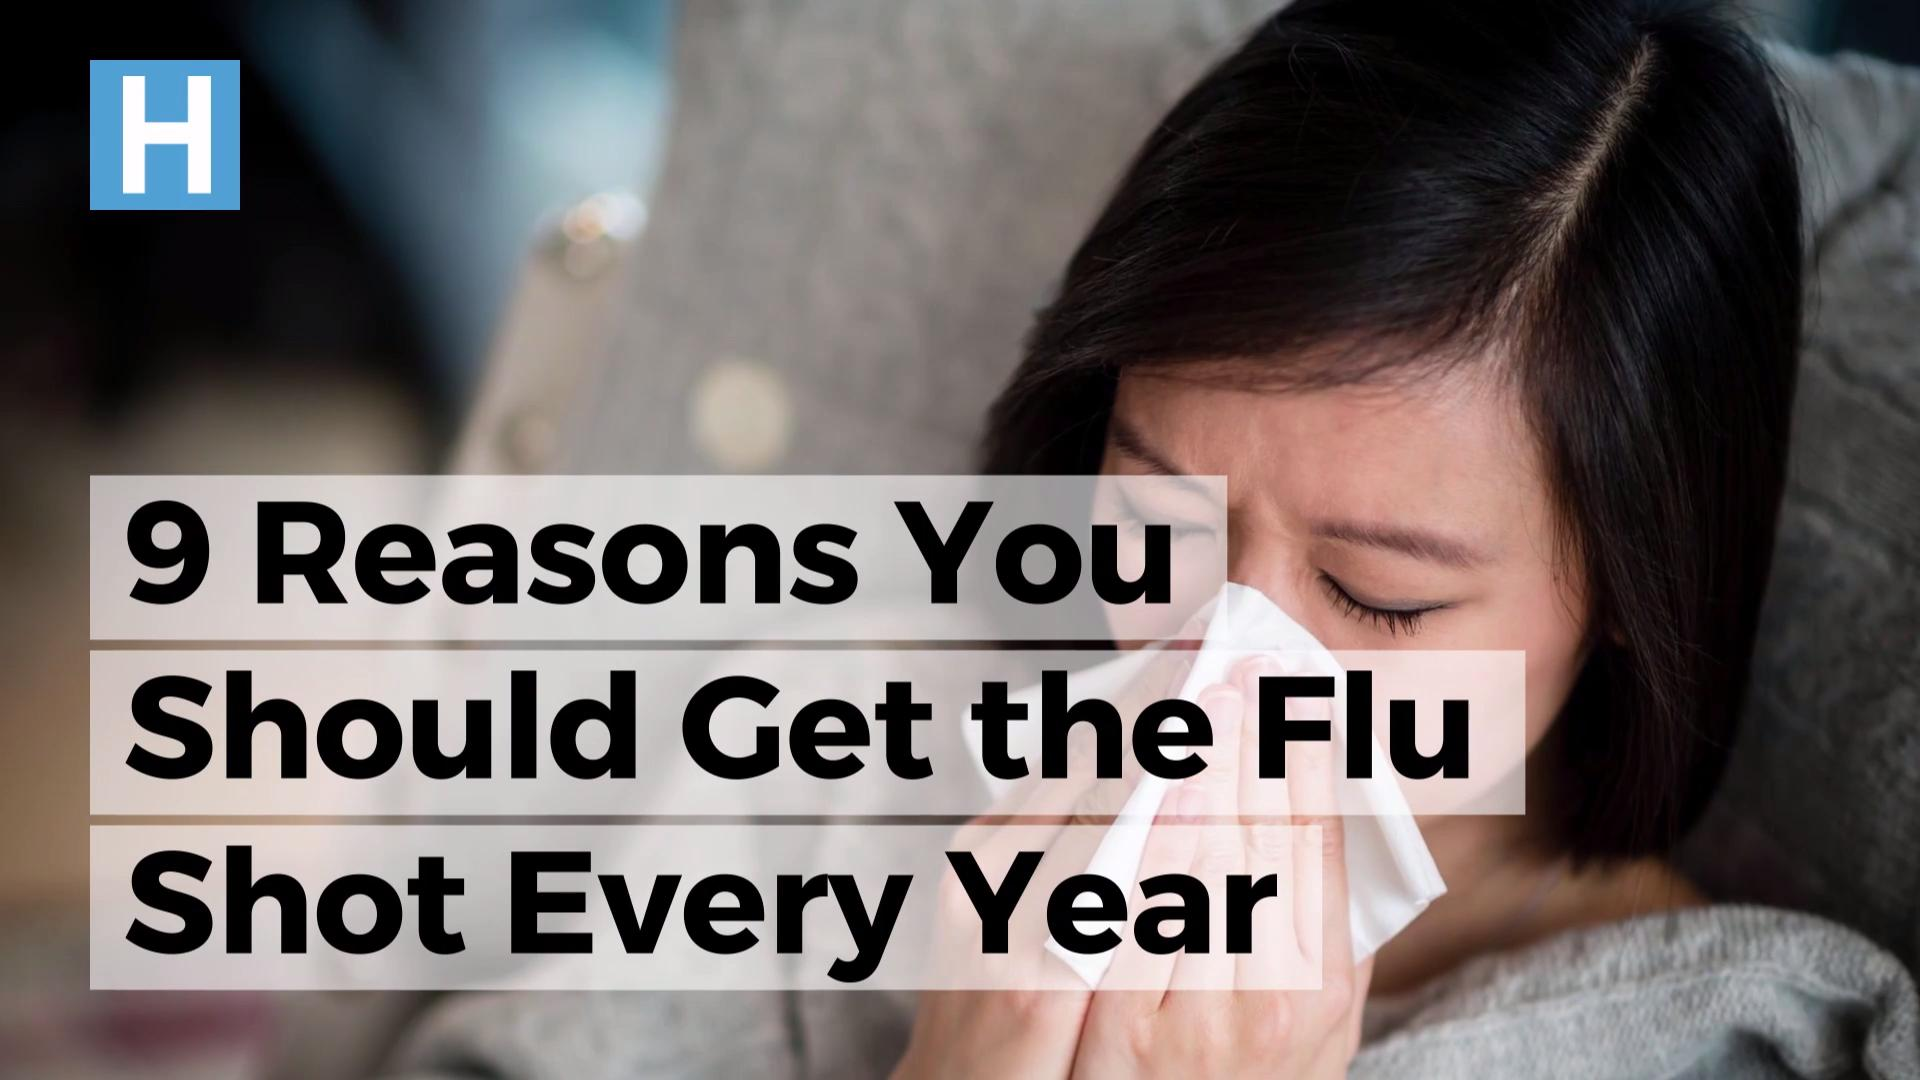 You can catch the flu from the flu shot